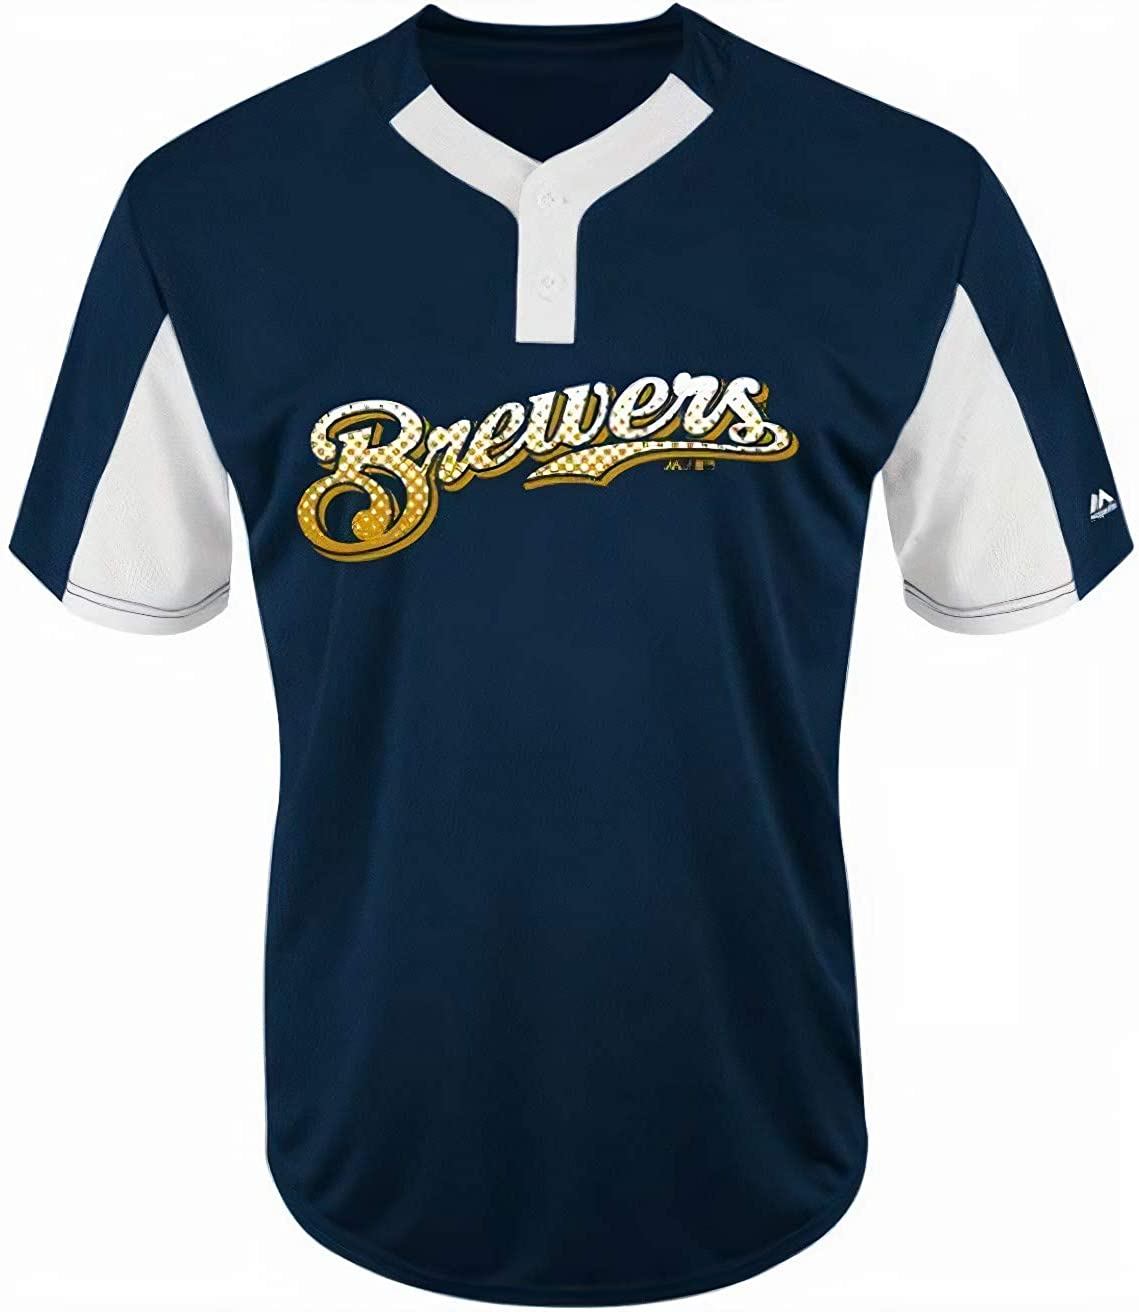 Majestic Milwaukee Brewers Manufacturer regenerated product Premier Eagle 2-Butto Great interest Base Men's Cool